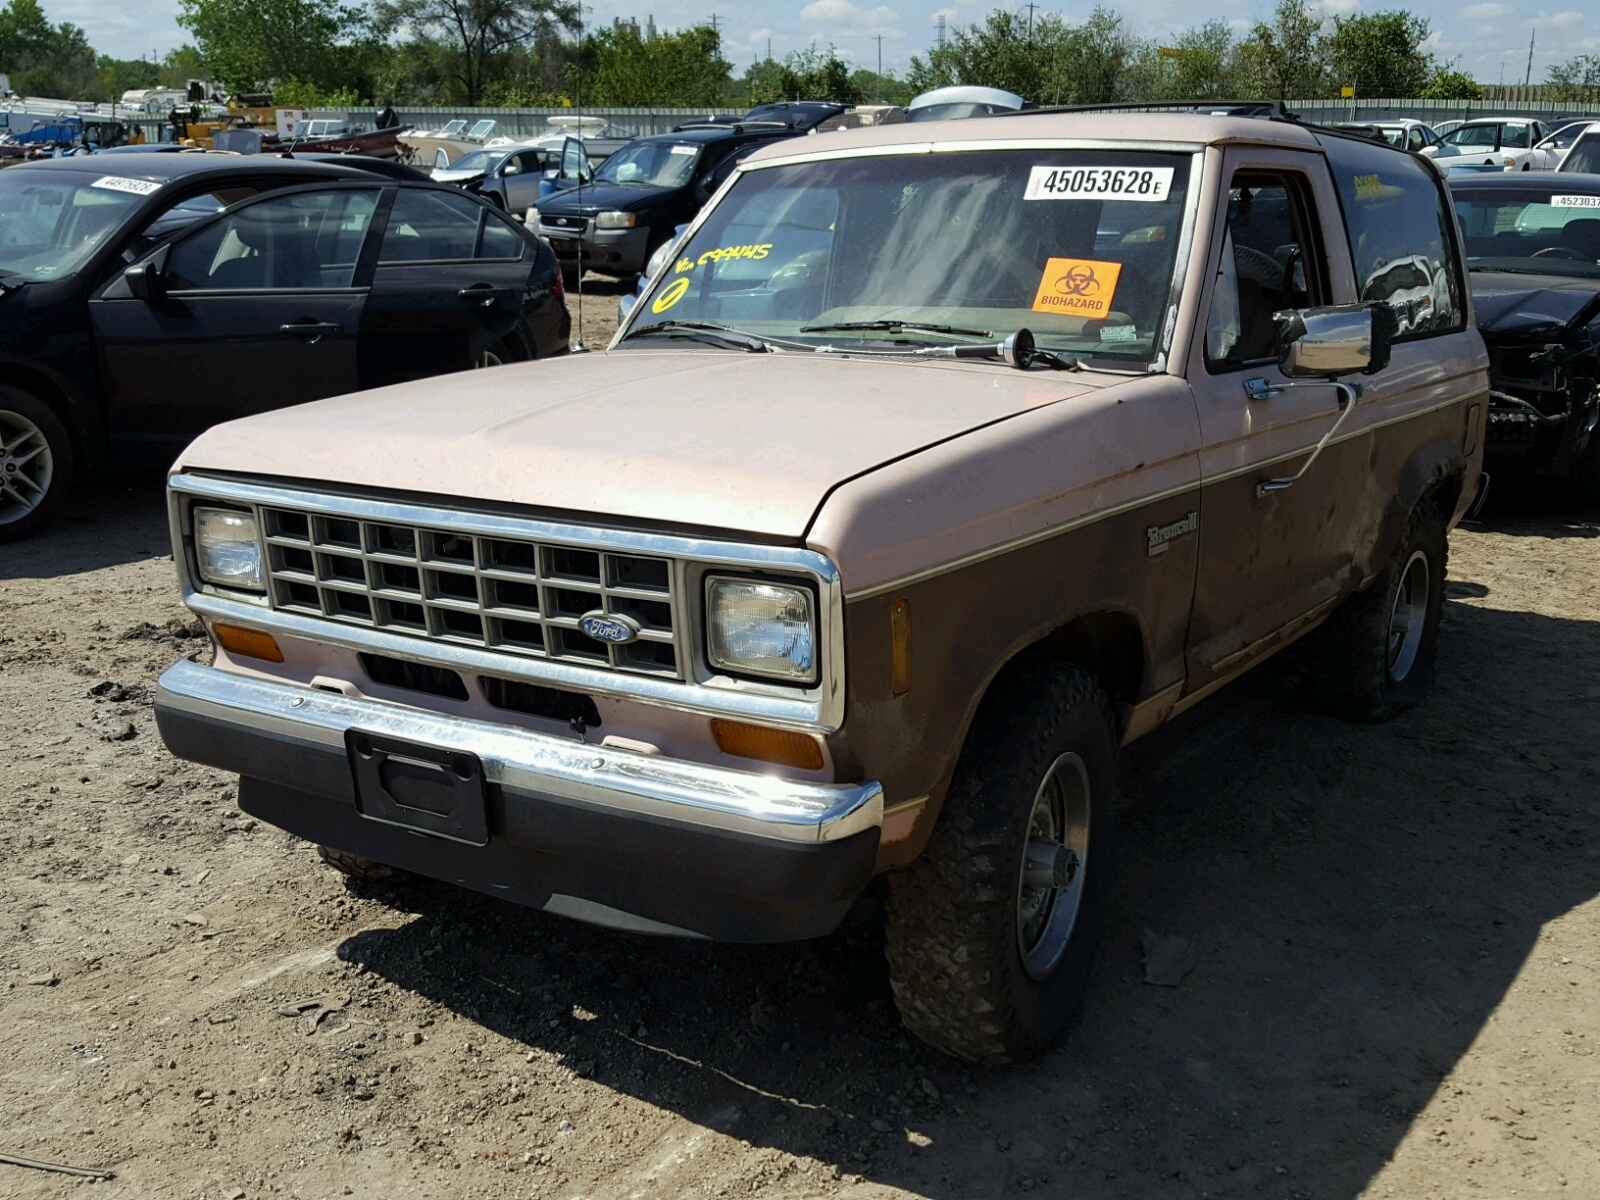 1fmcu14t1huc99445 1987 Brown Ford Bronco Ii On Sale In Ks Kansas 29l Right View